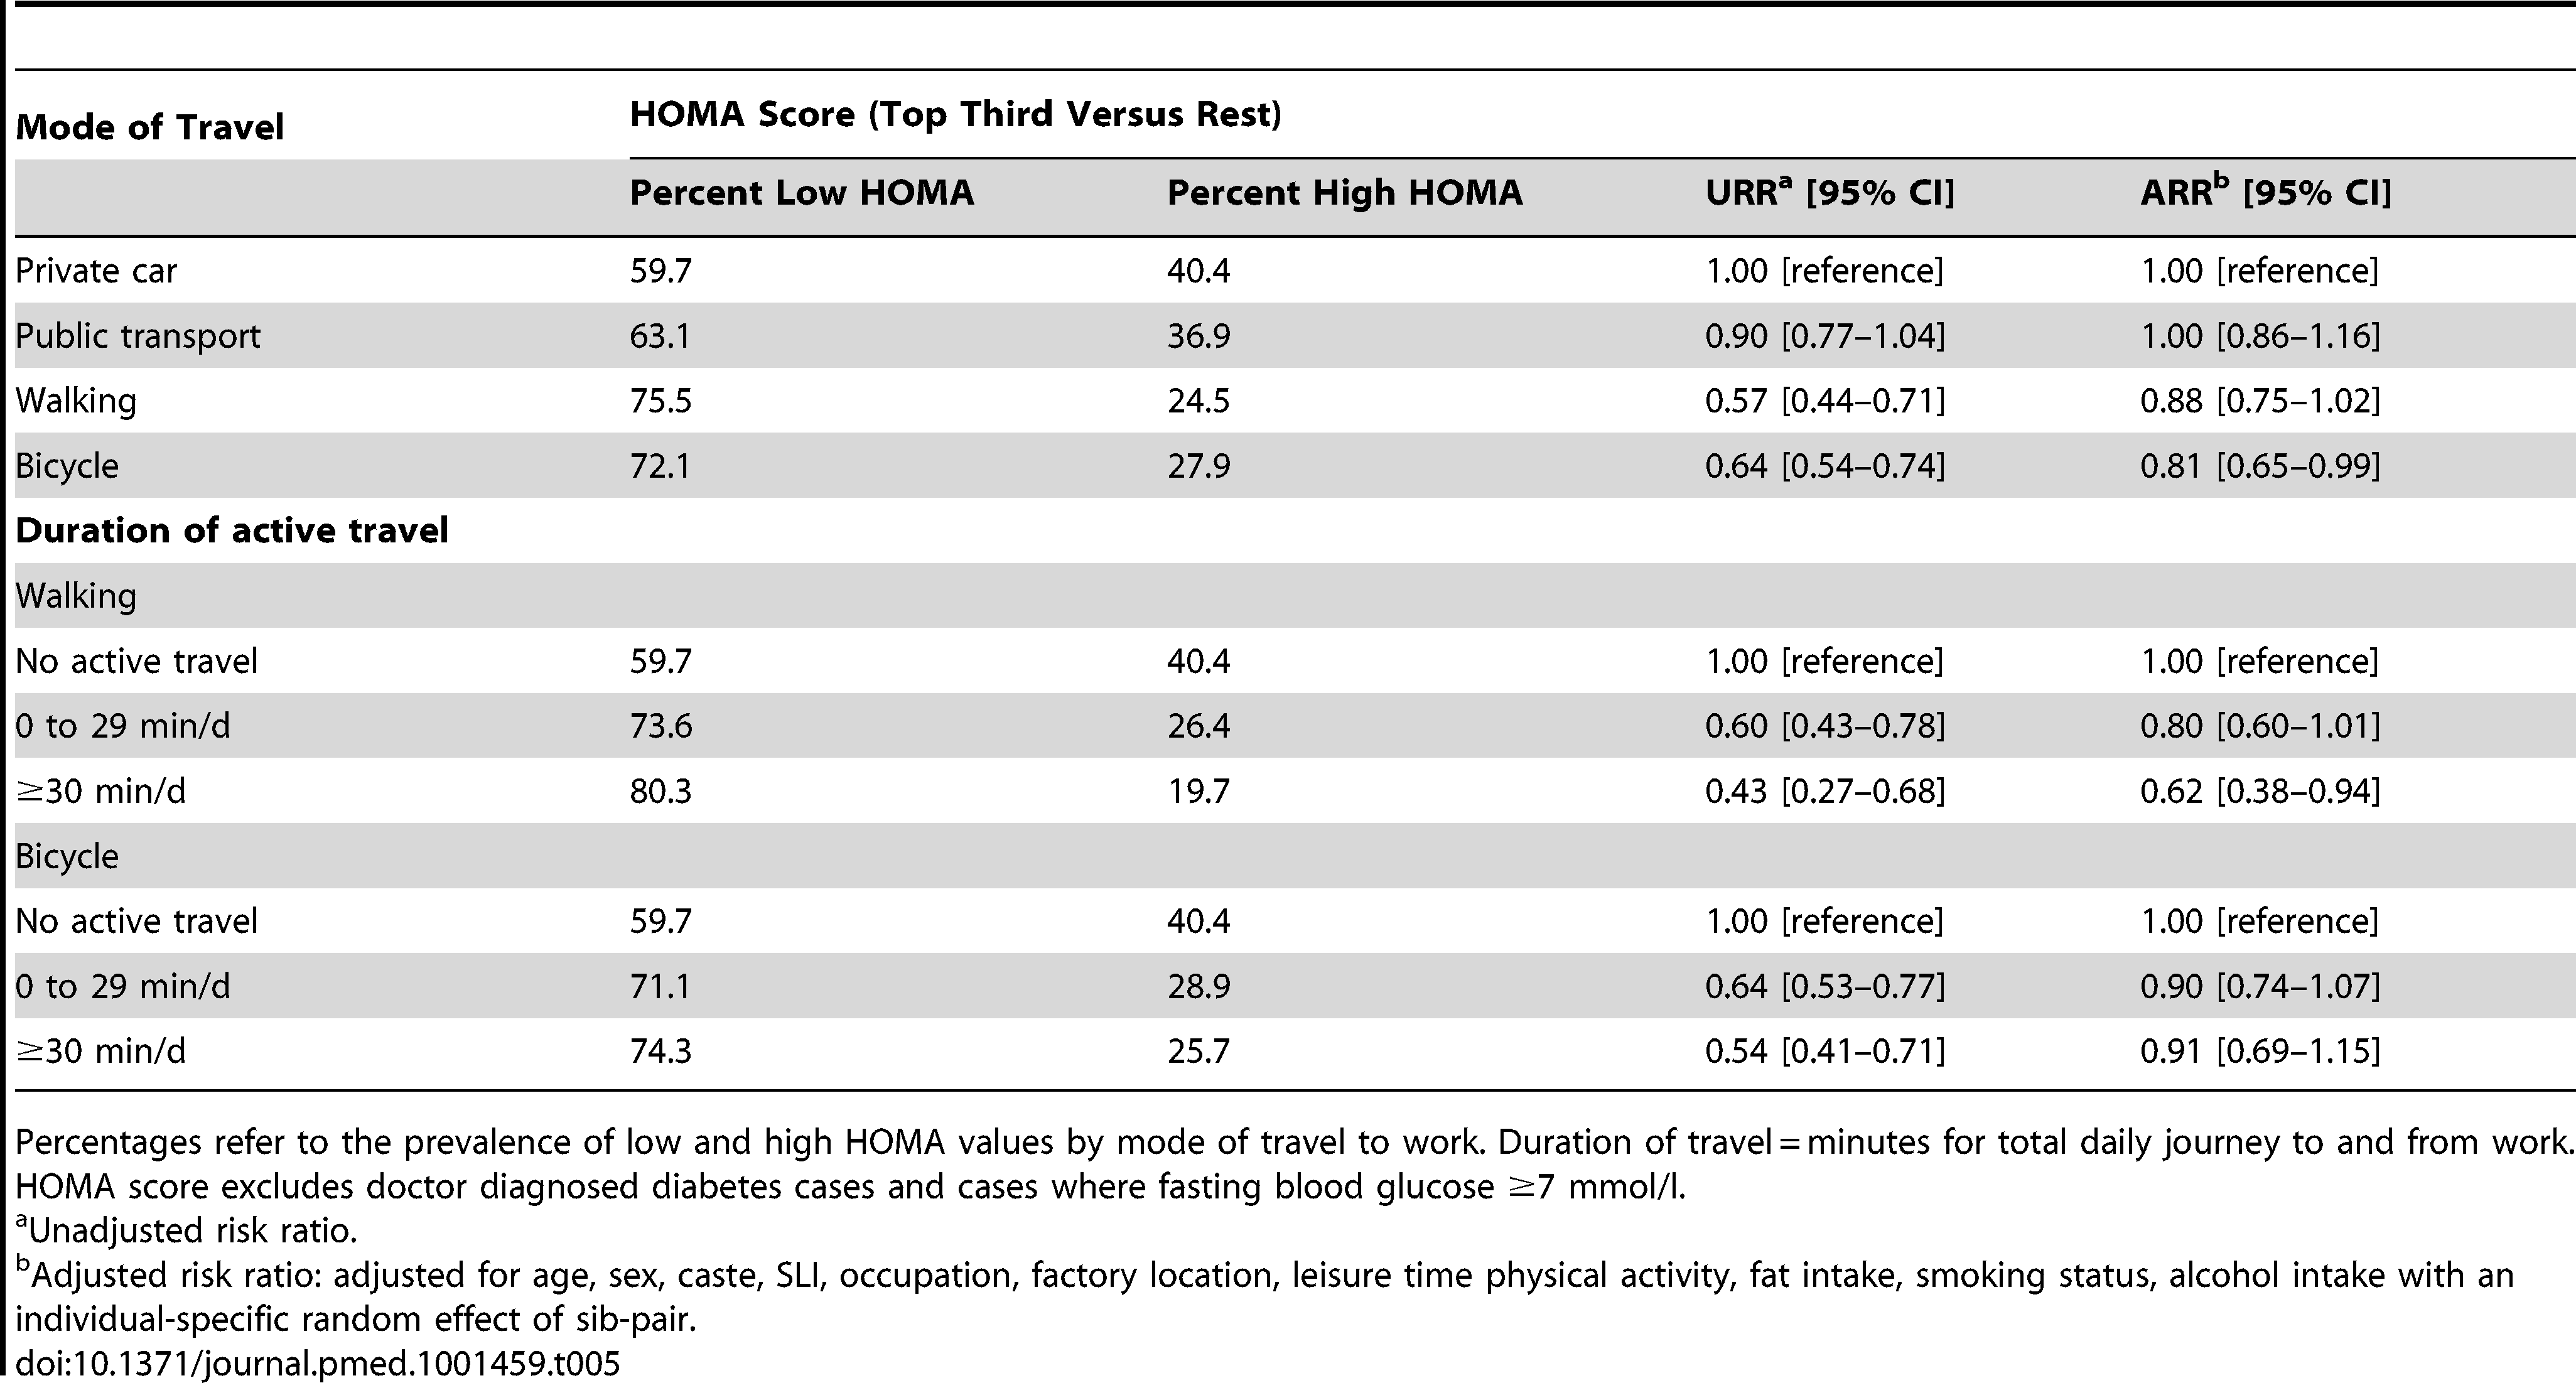 Unadjusted and adjusted risk ratios for mode of travel and duration of active travel with HOMA values.